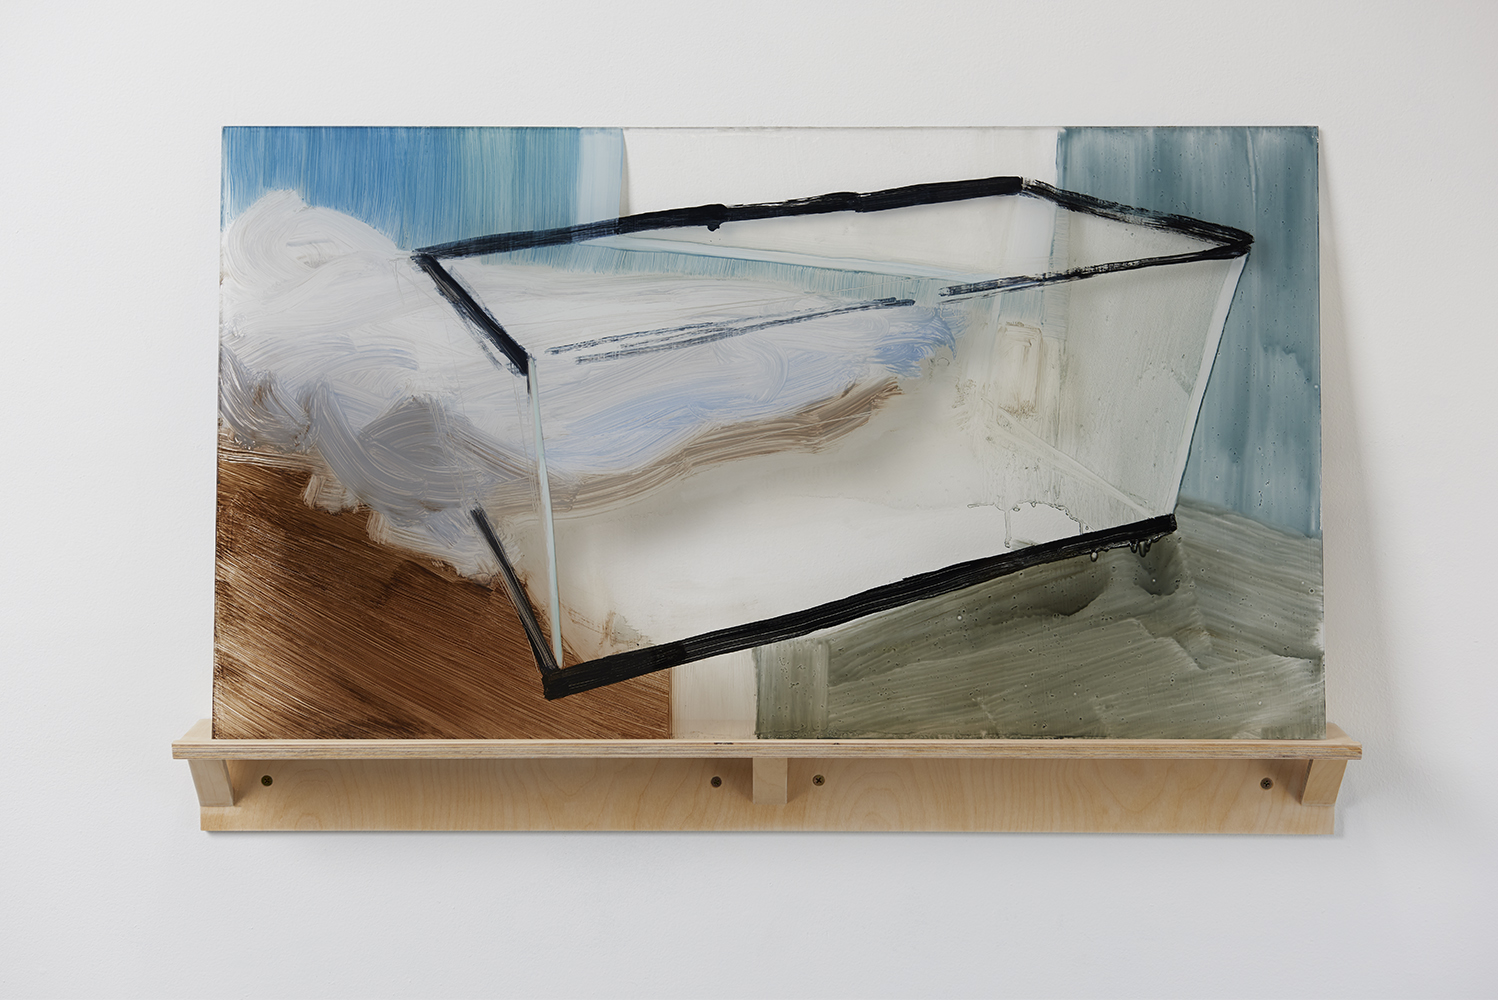 Vazamento    2015  óleo sobre acrílico, prateleira de bétula  Pintura 46 x 82 x 0.64 cm., prateleira 10 x 86 x 9 cm.   MECA Permanent Collection     ⬜     Leaked    2015  Oil paint on plexiglass, artist-made birch shelf  18'' x 32'' x 0.25'' plexi, 4'' x 34'' x 3.5'' shelf   MECAintro Coleção Permanente